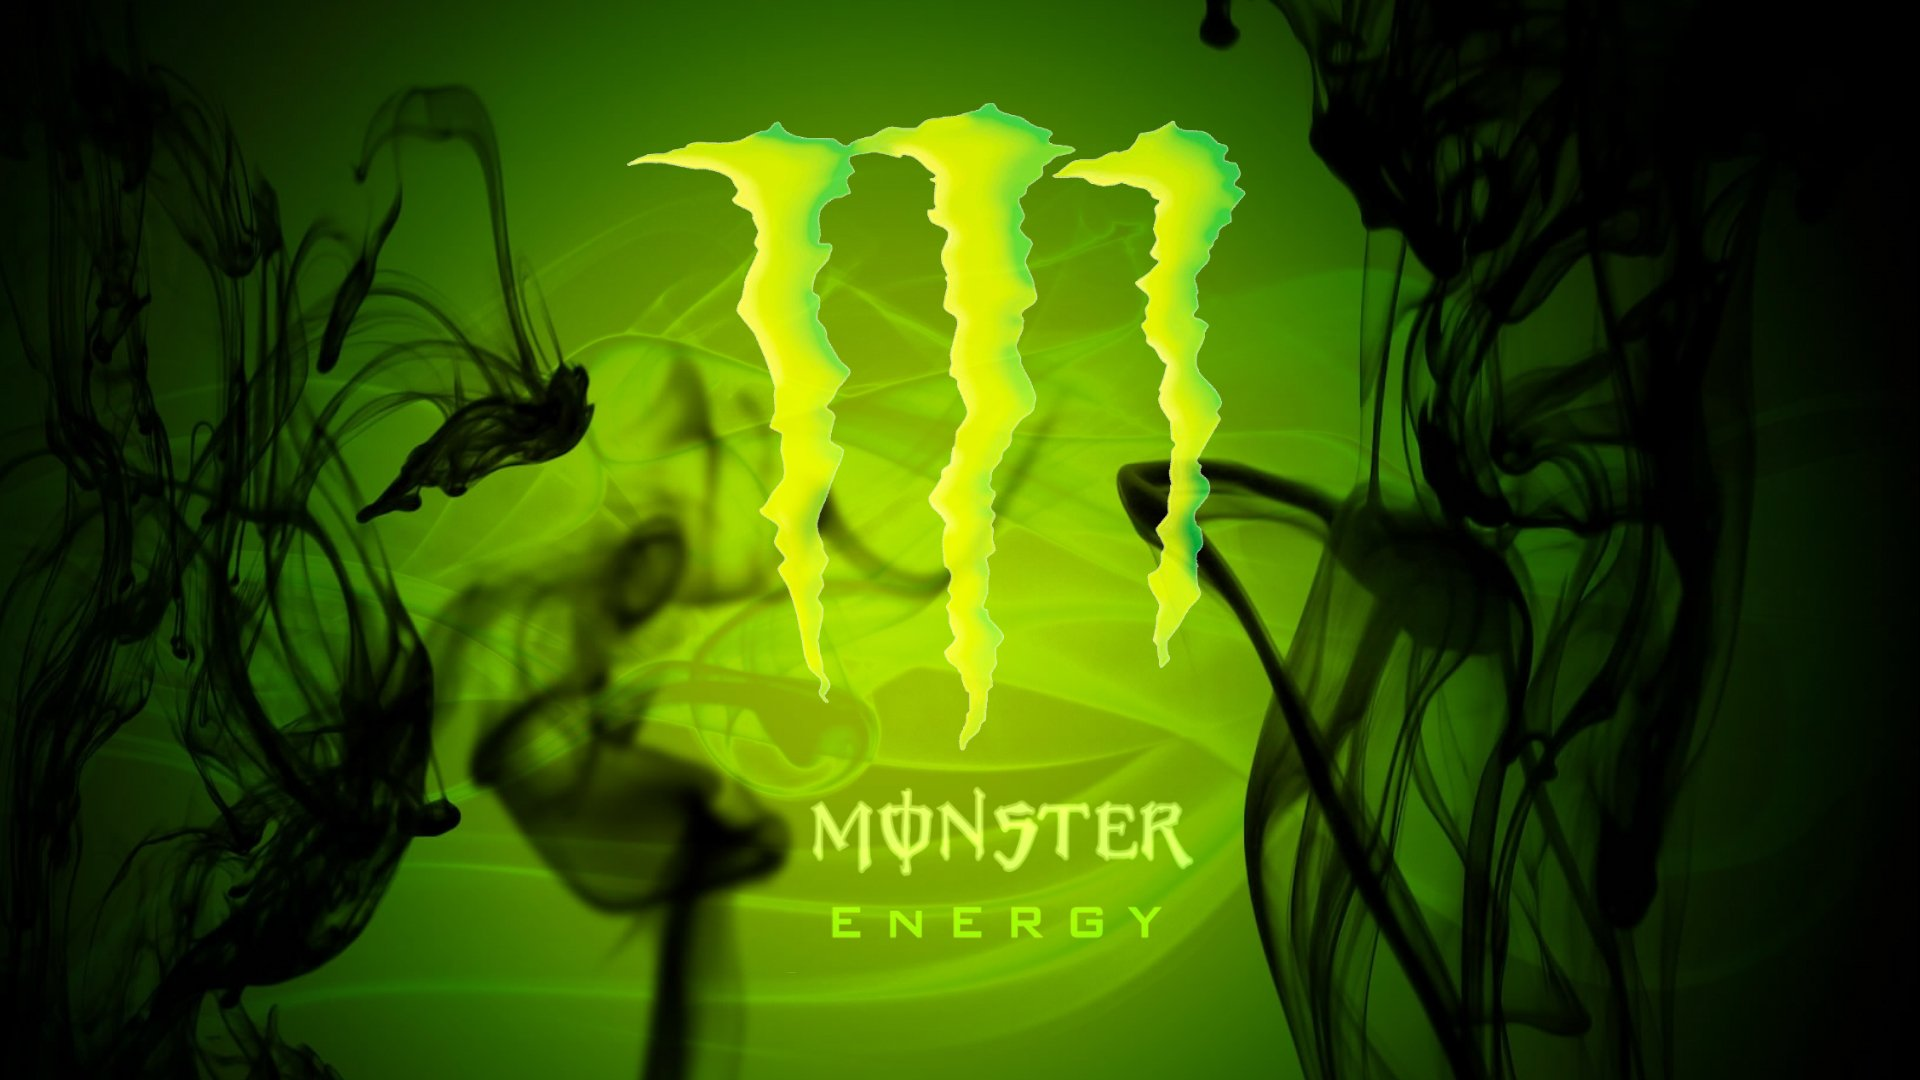 24 monster hd wallpapers background images wallpaper abyss drink energy monster hd wallpaper background image id527868 voltagebd Choice Image